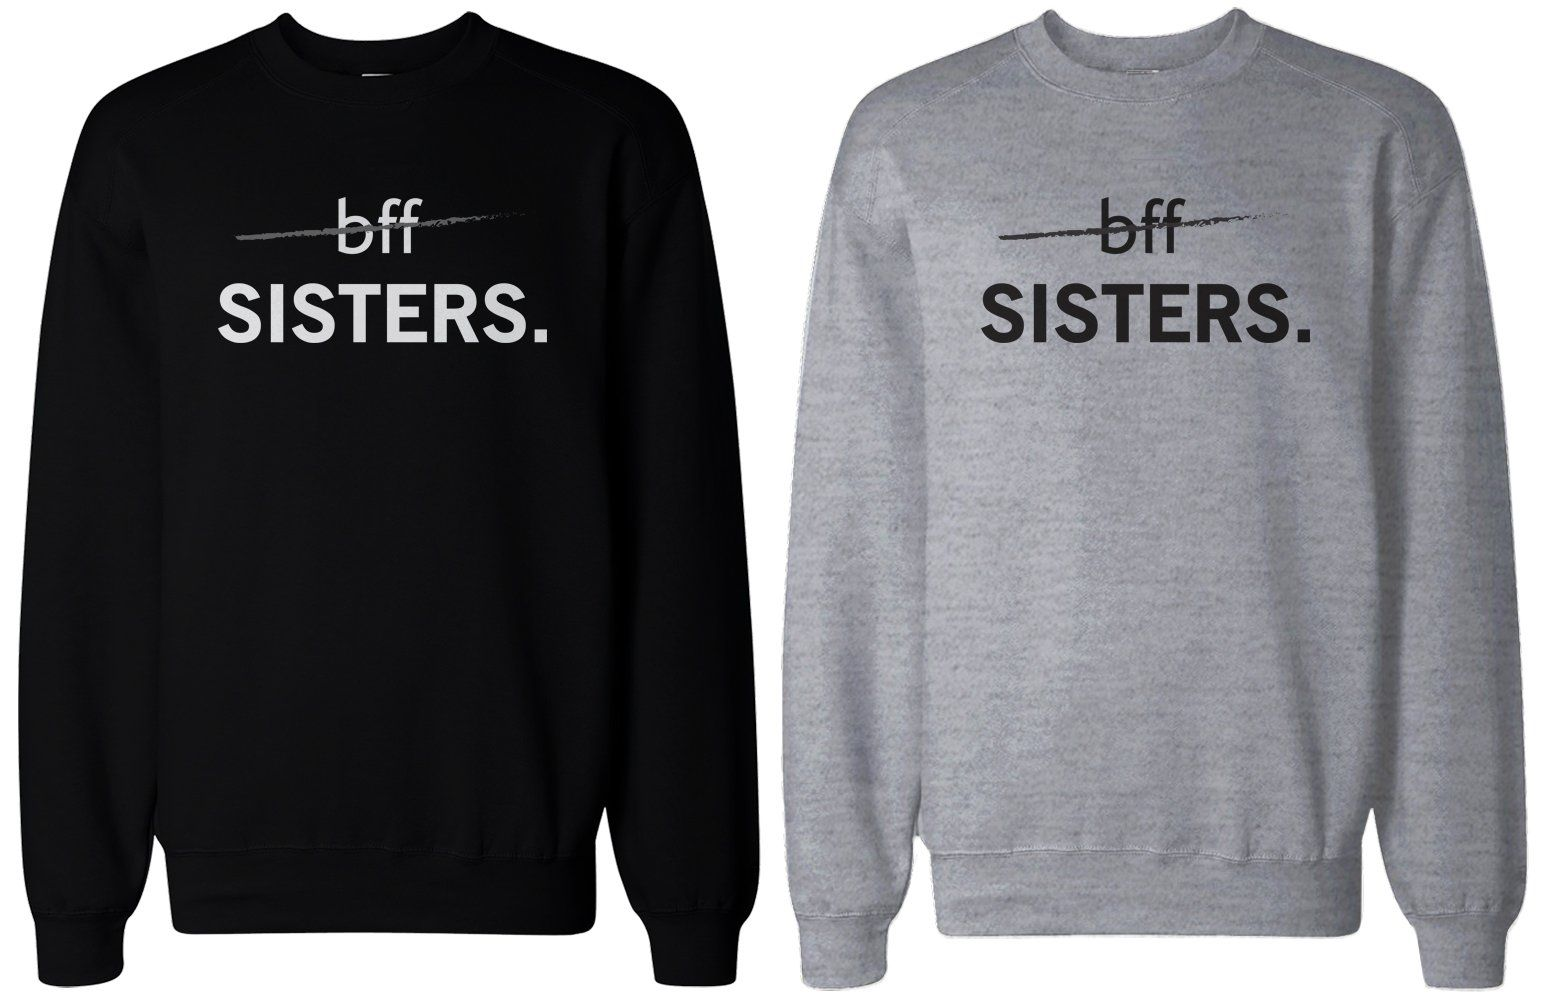 052f7be855f8b Matching BFF Black and Grey Sweatshirts for Best Friends - BFF Sisters #bff  #bestfriends #sisters #bestfriend